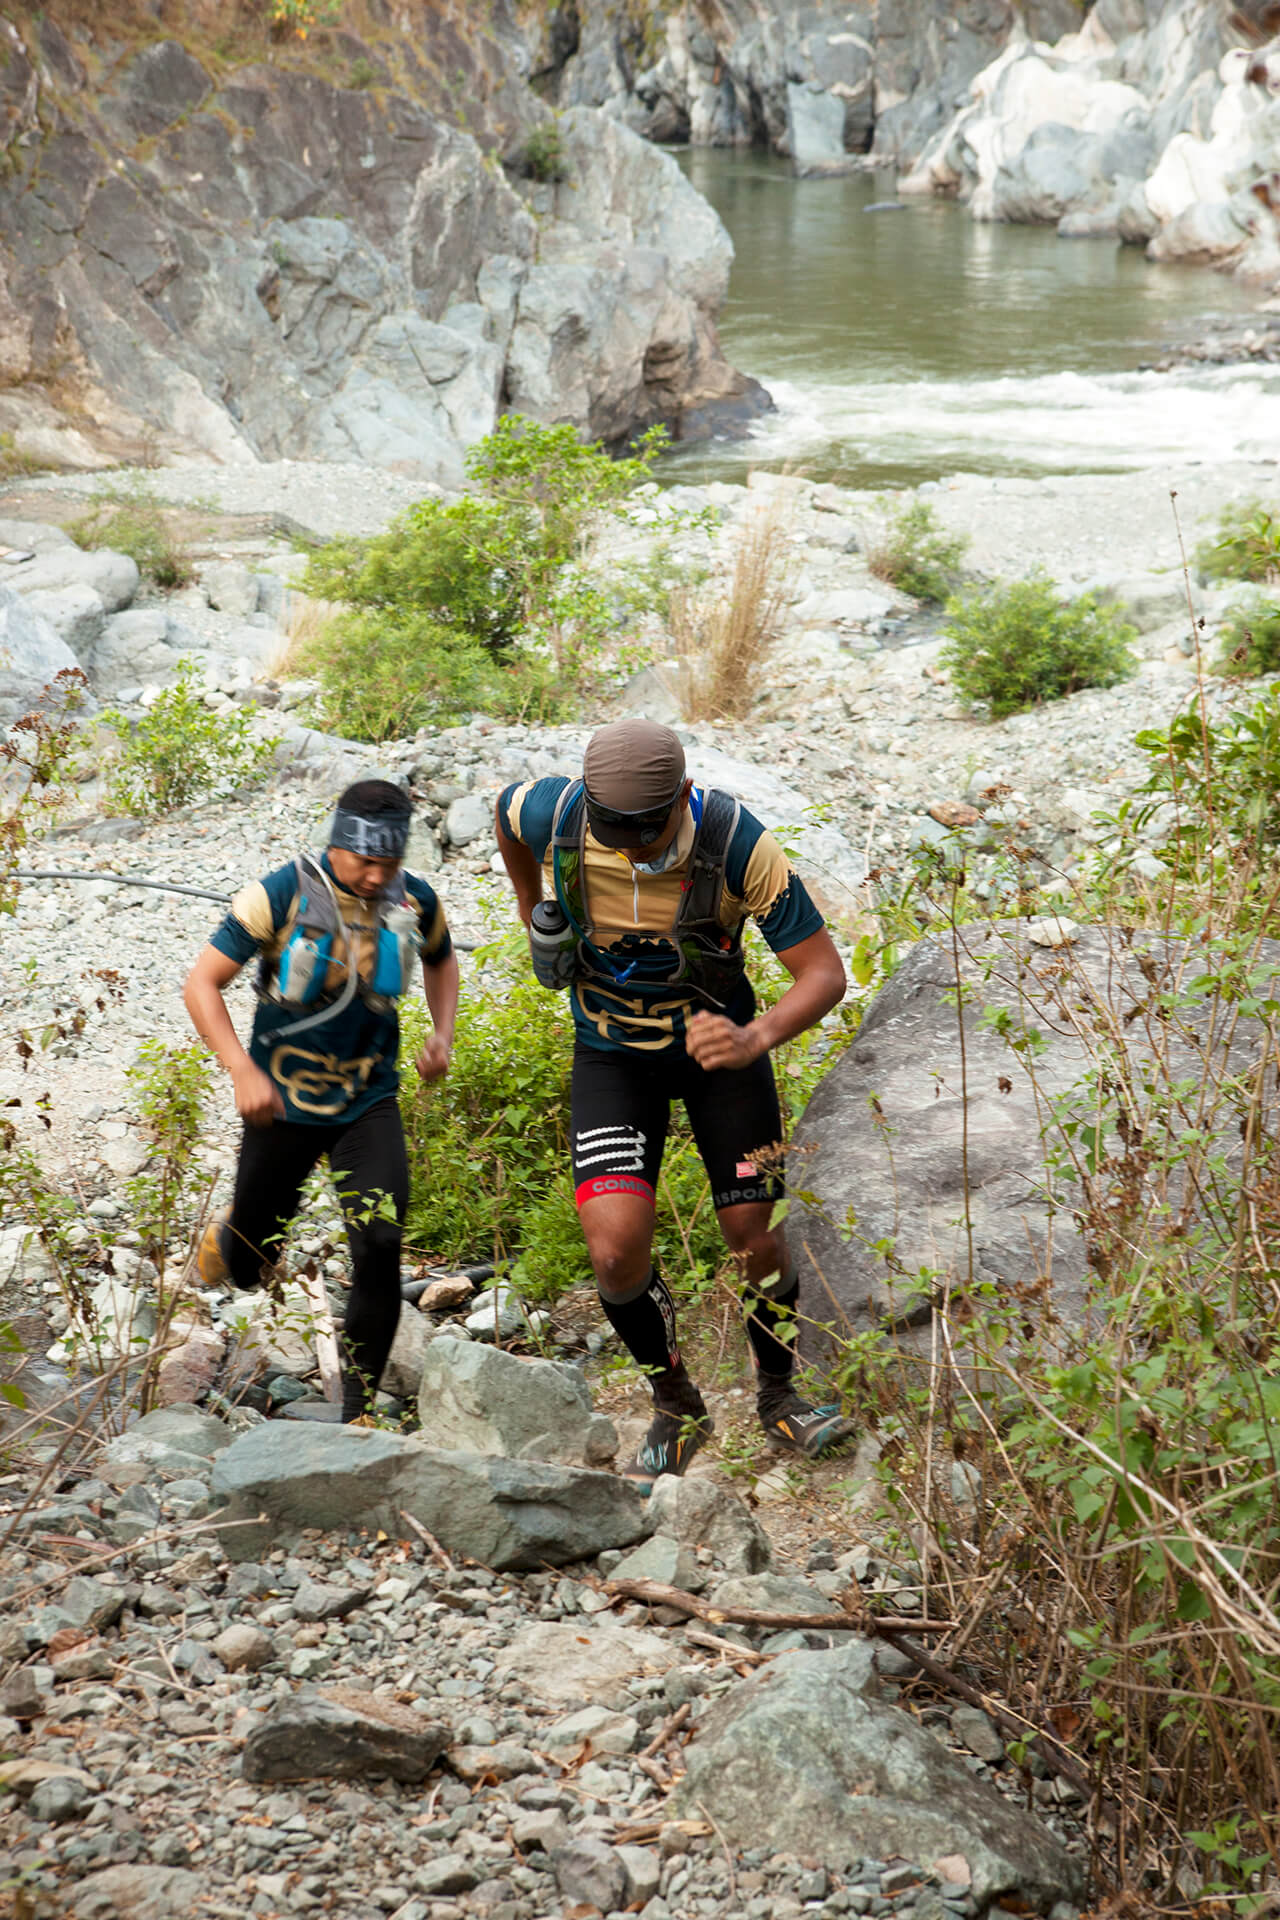 Headlining the races is the 50km Ultra Marathon, which offers runners a superb view of the Agno River Valley.